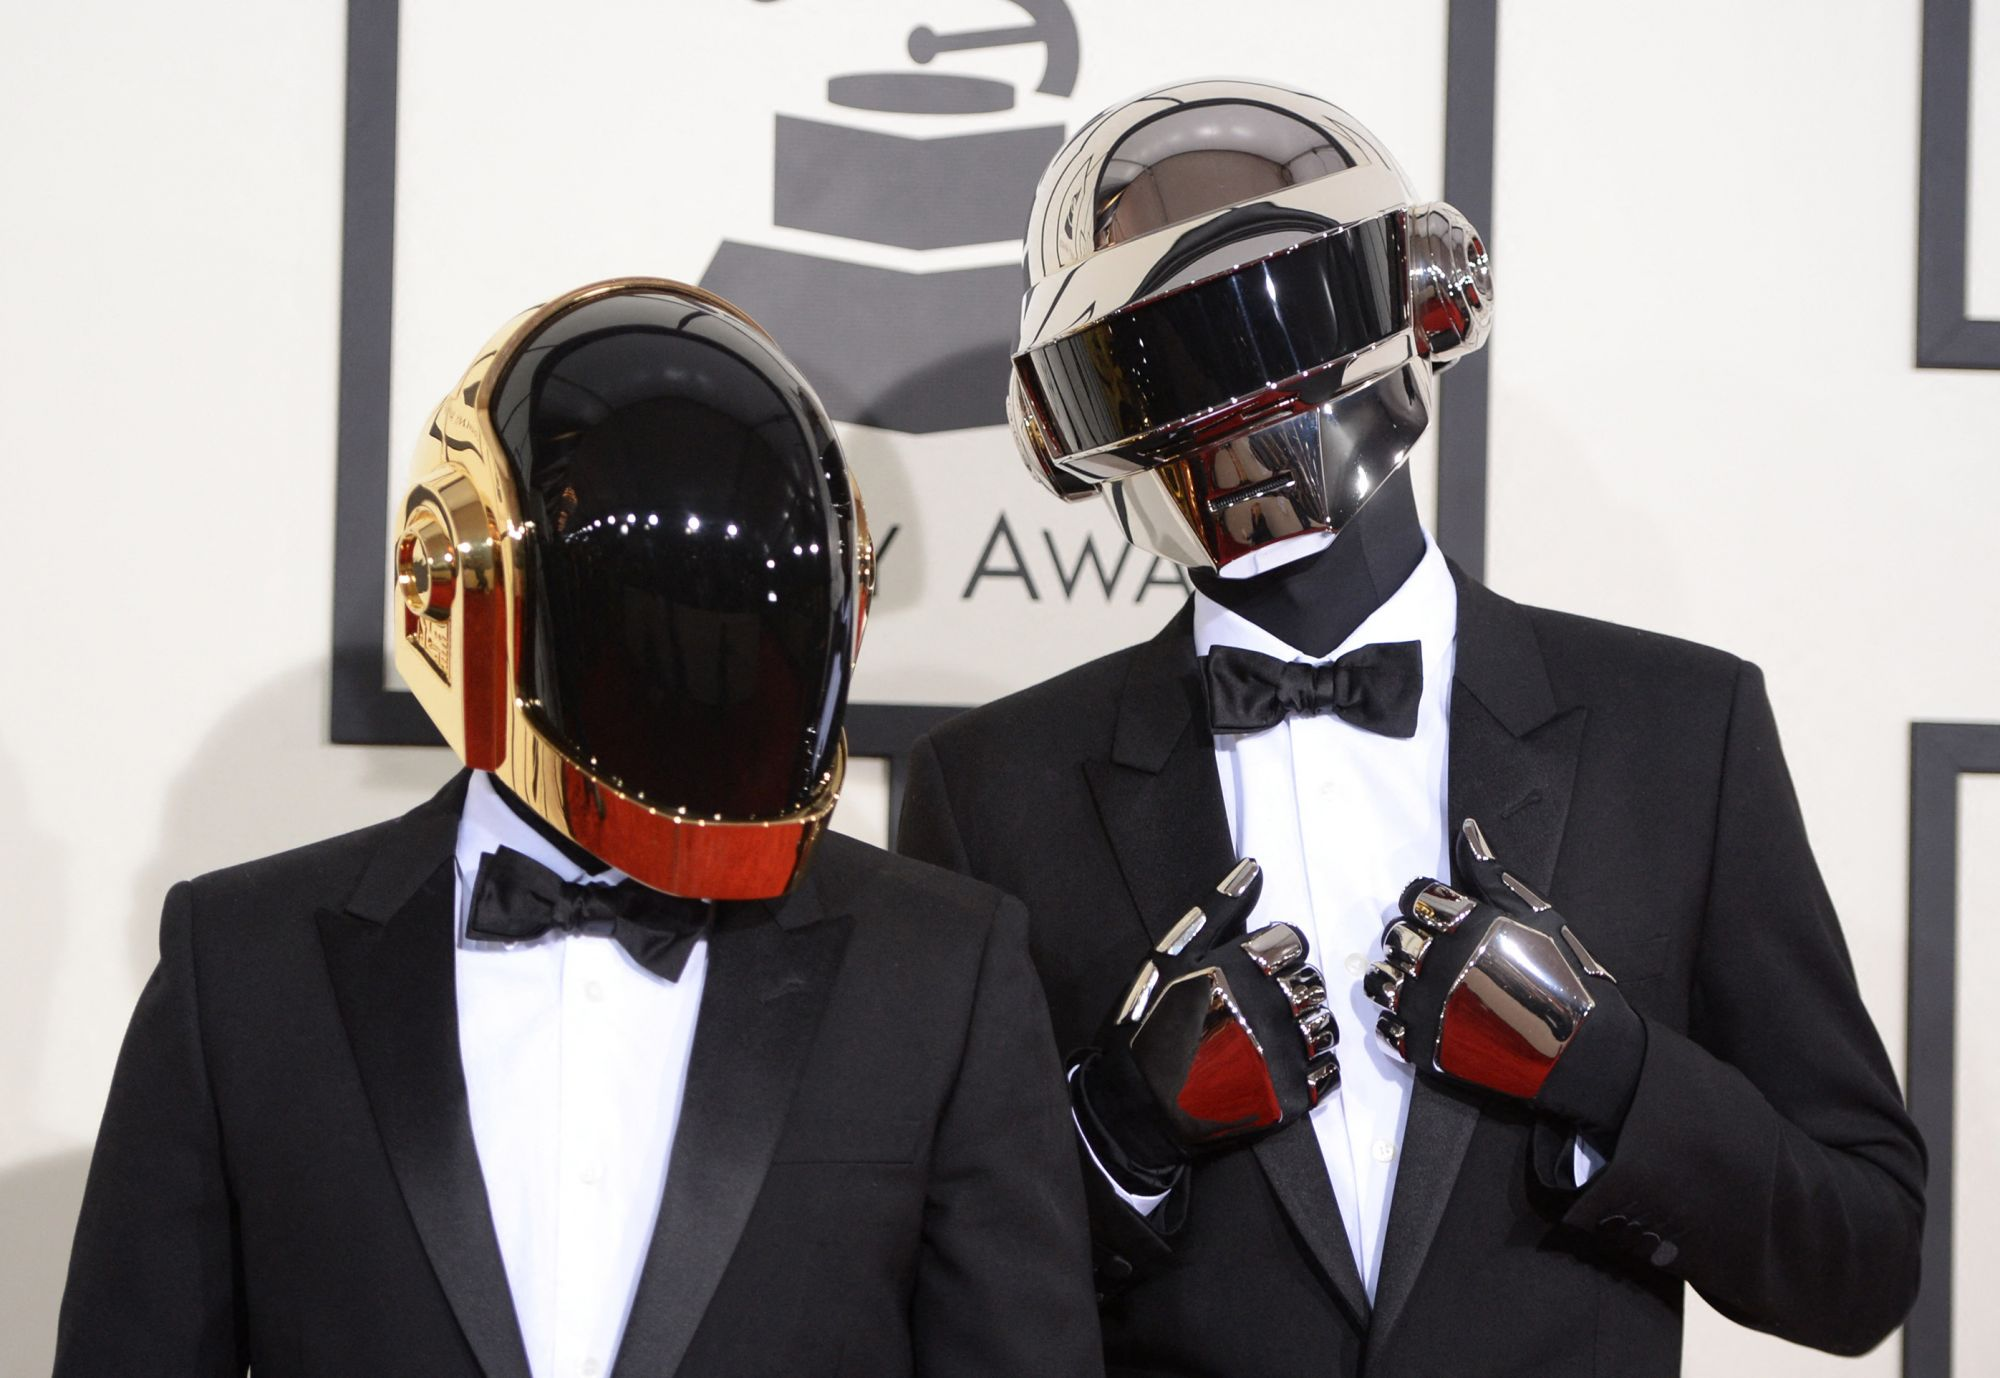 """Nominee For Best Album Of The Year """"Random Access Memories"""" Daft Punk arrive on the red carpet for the 56th Grammy Awards at the Staples Center in Los Angeles, California, January 26, 2014. AFP PHOTO ROBYN BECK (Photo by ROBYN BECK / AFP)"""